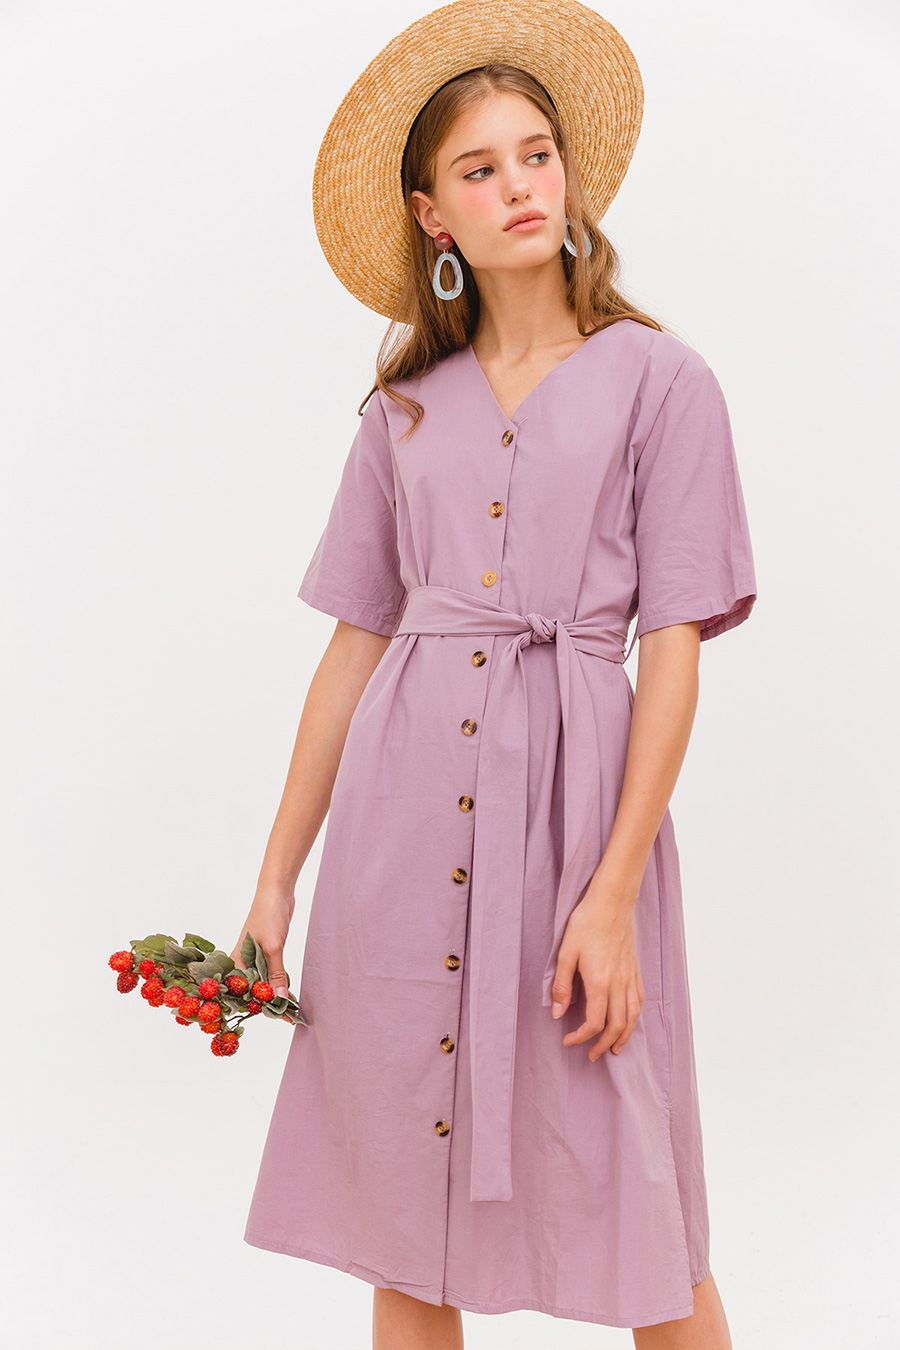 BELLONA MIDI DRESS - WISTERIA